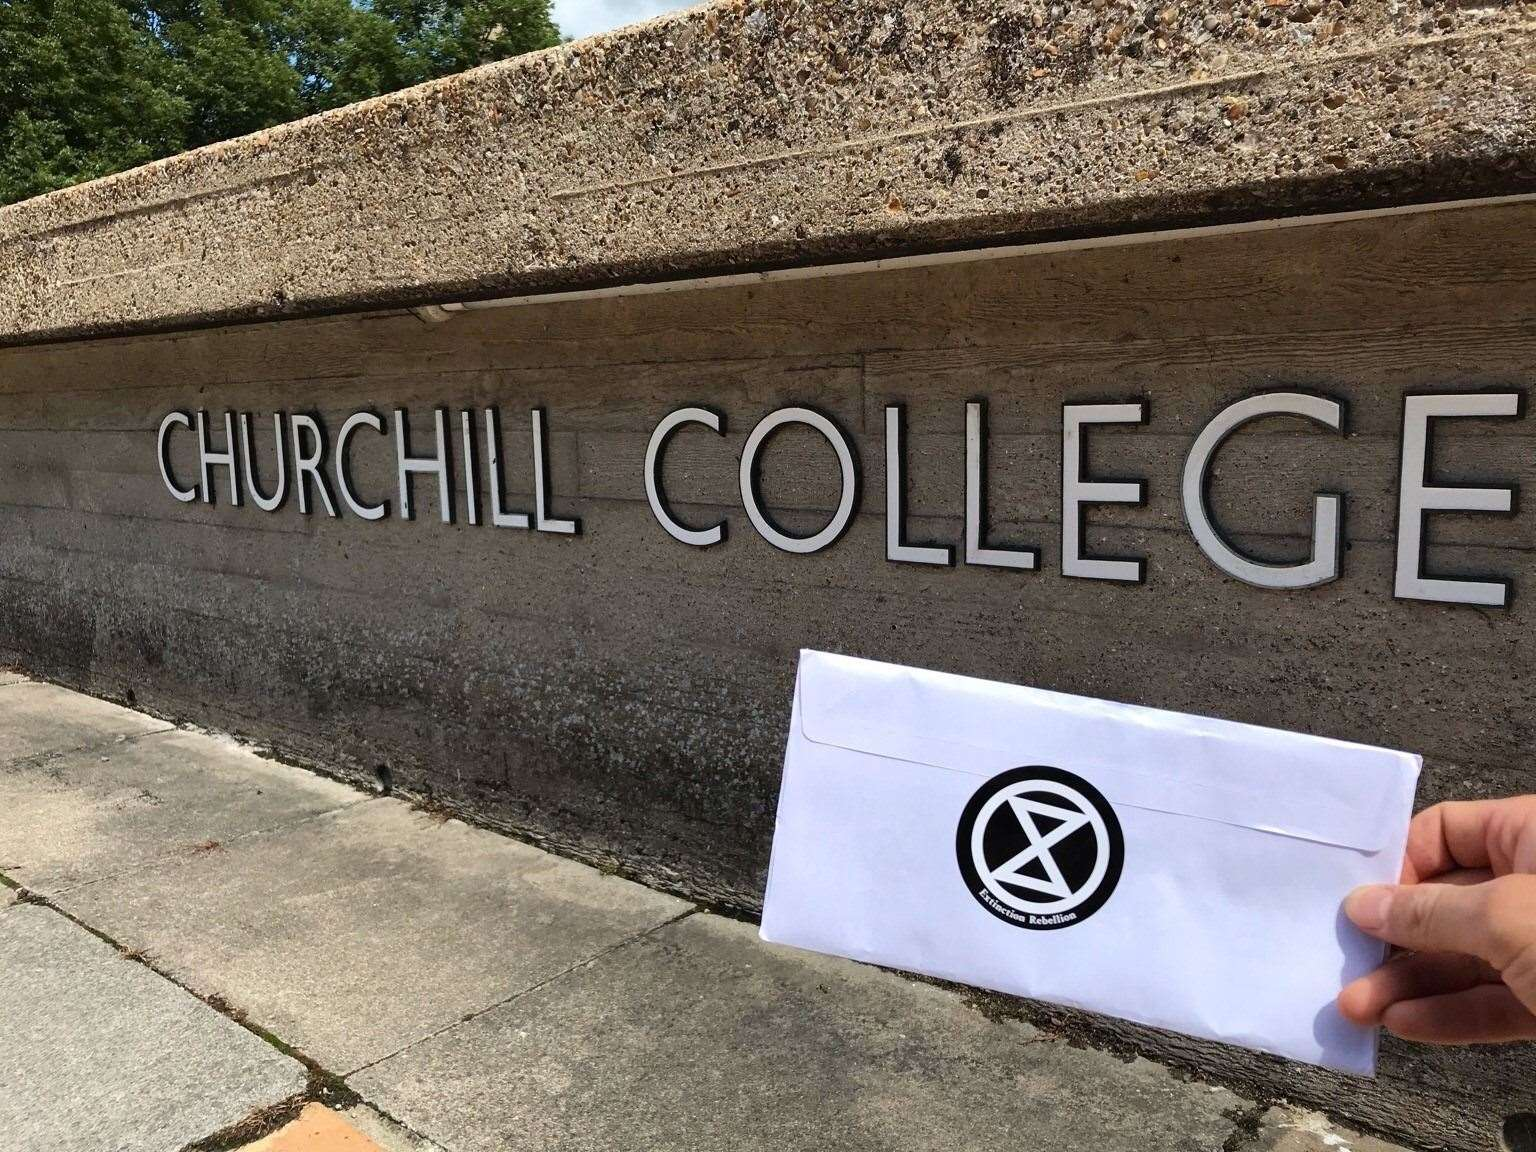 Extinction Rebellion at Churchill College on July 11, 2020. Picture: XR